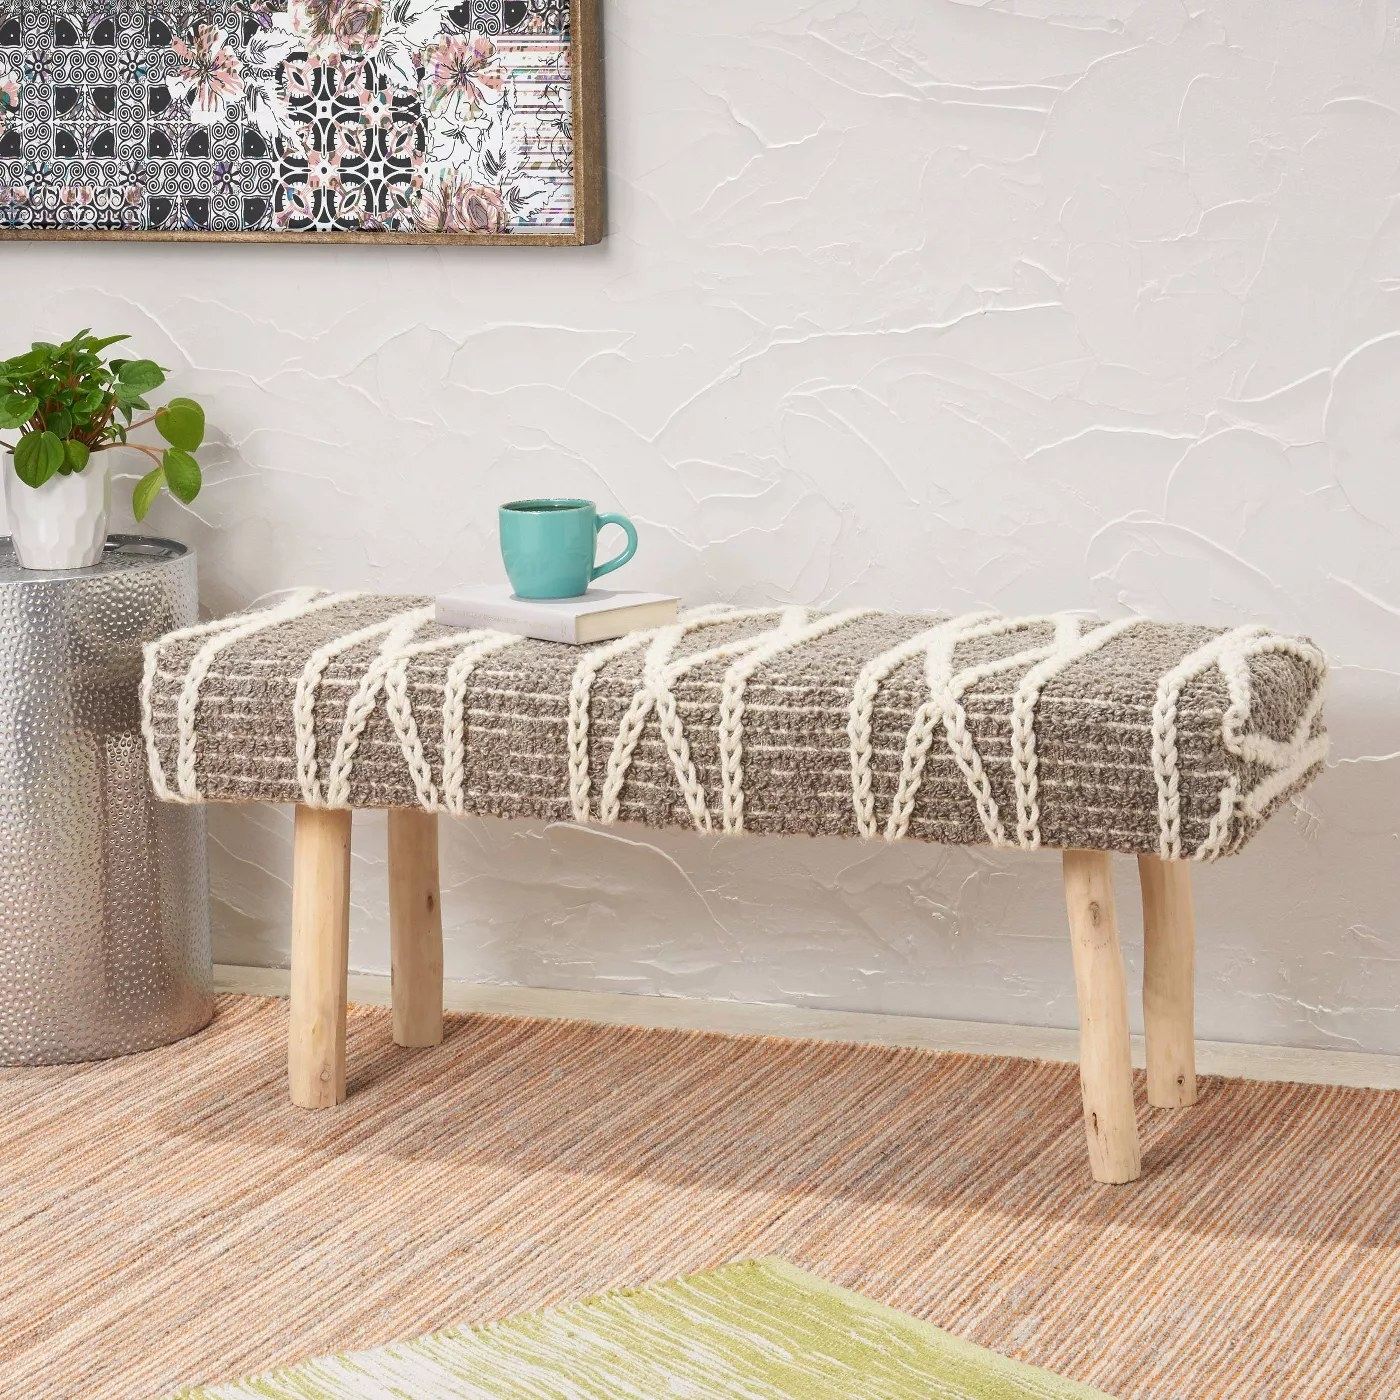 The gray bench with a chain pattern and eucalyptus wood legs